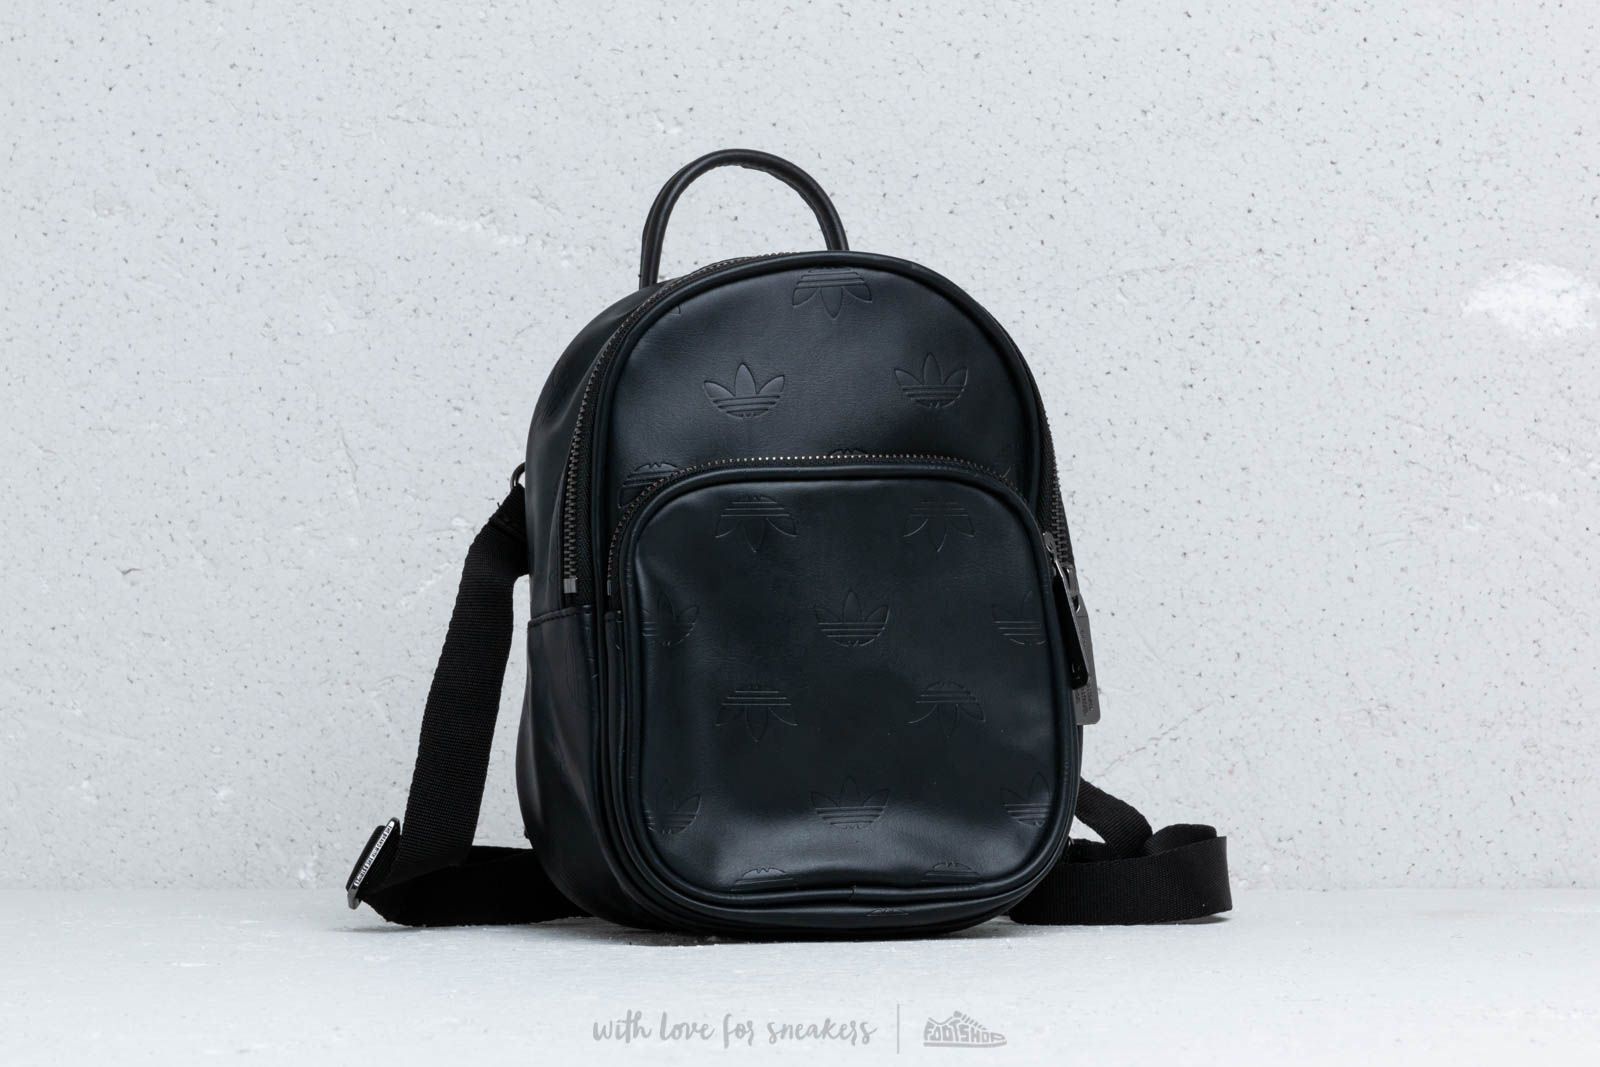 a5a1ec8e3 Adidas Originals Adicolor Mini Backpack Black | Footshop